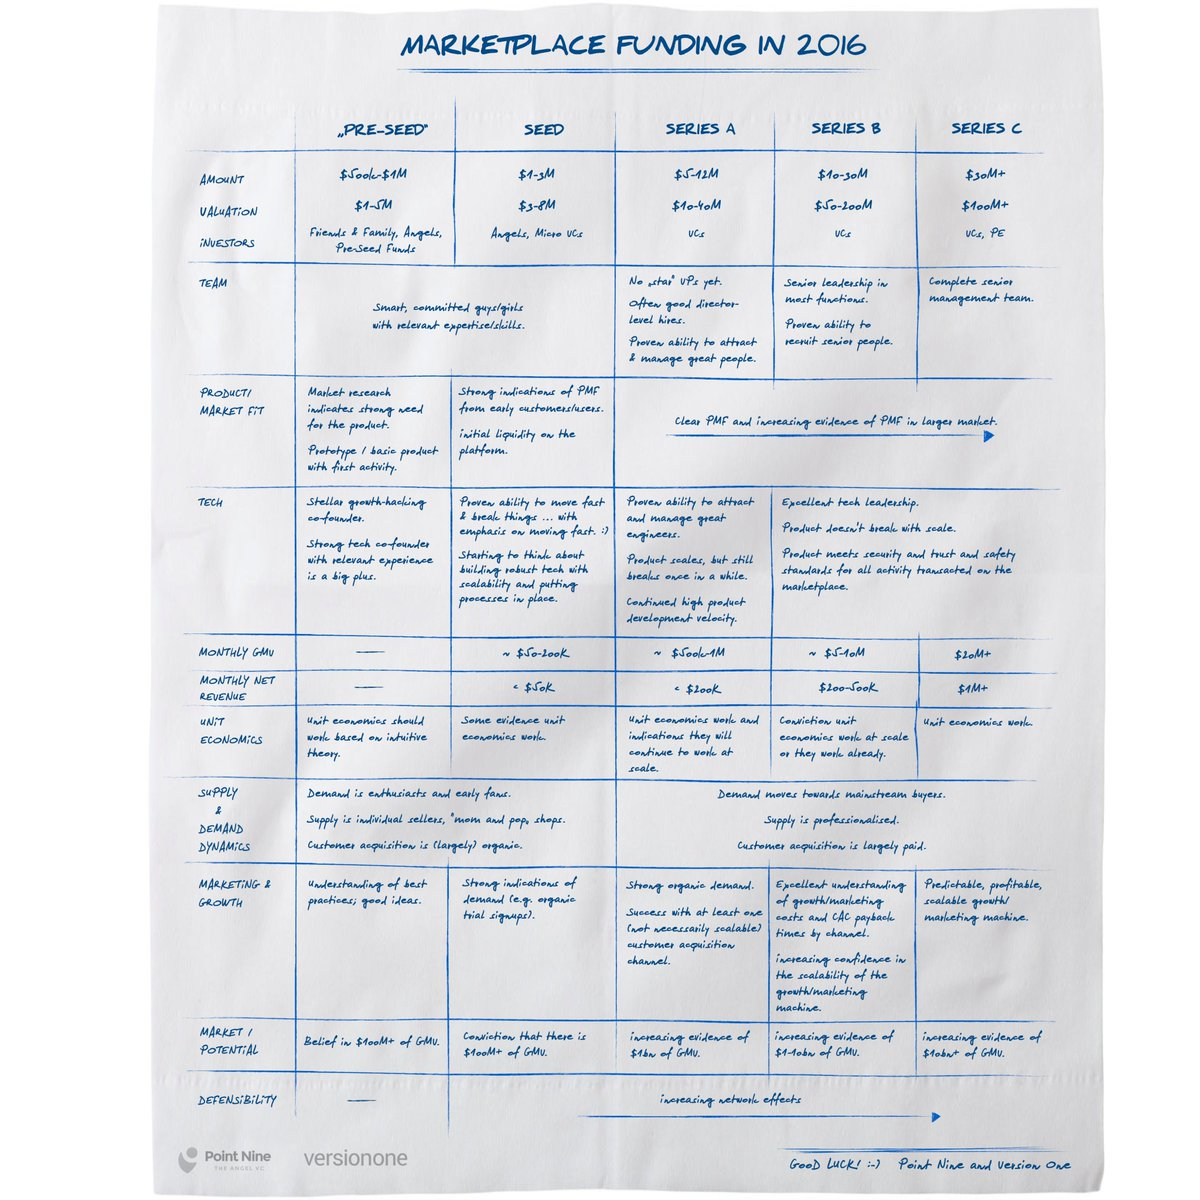 Due to popular demand. ;) The Marketplace Funding Napkin. https://t.co/Ma6JfoT7QJ